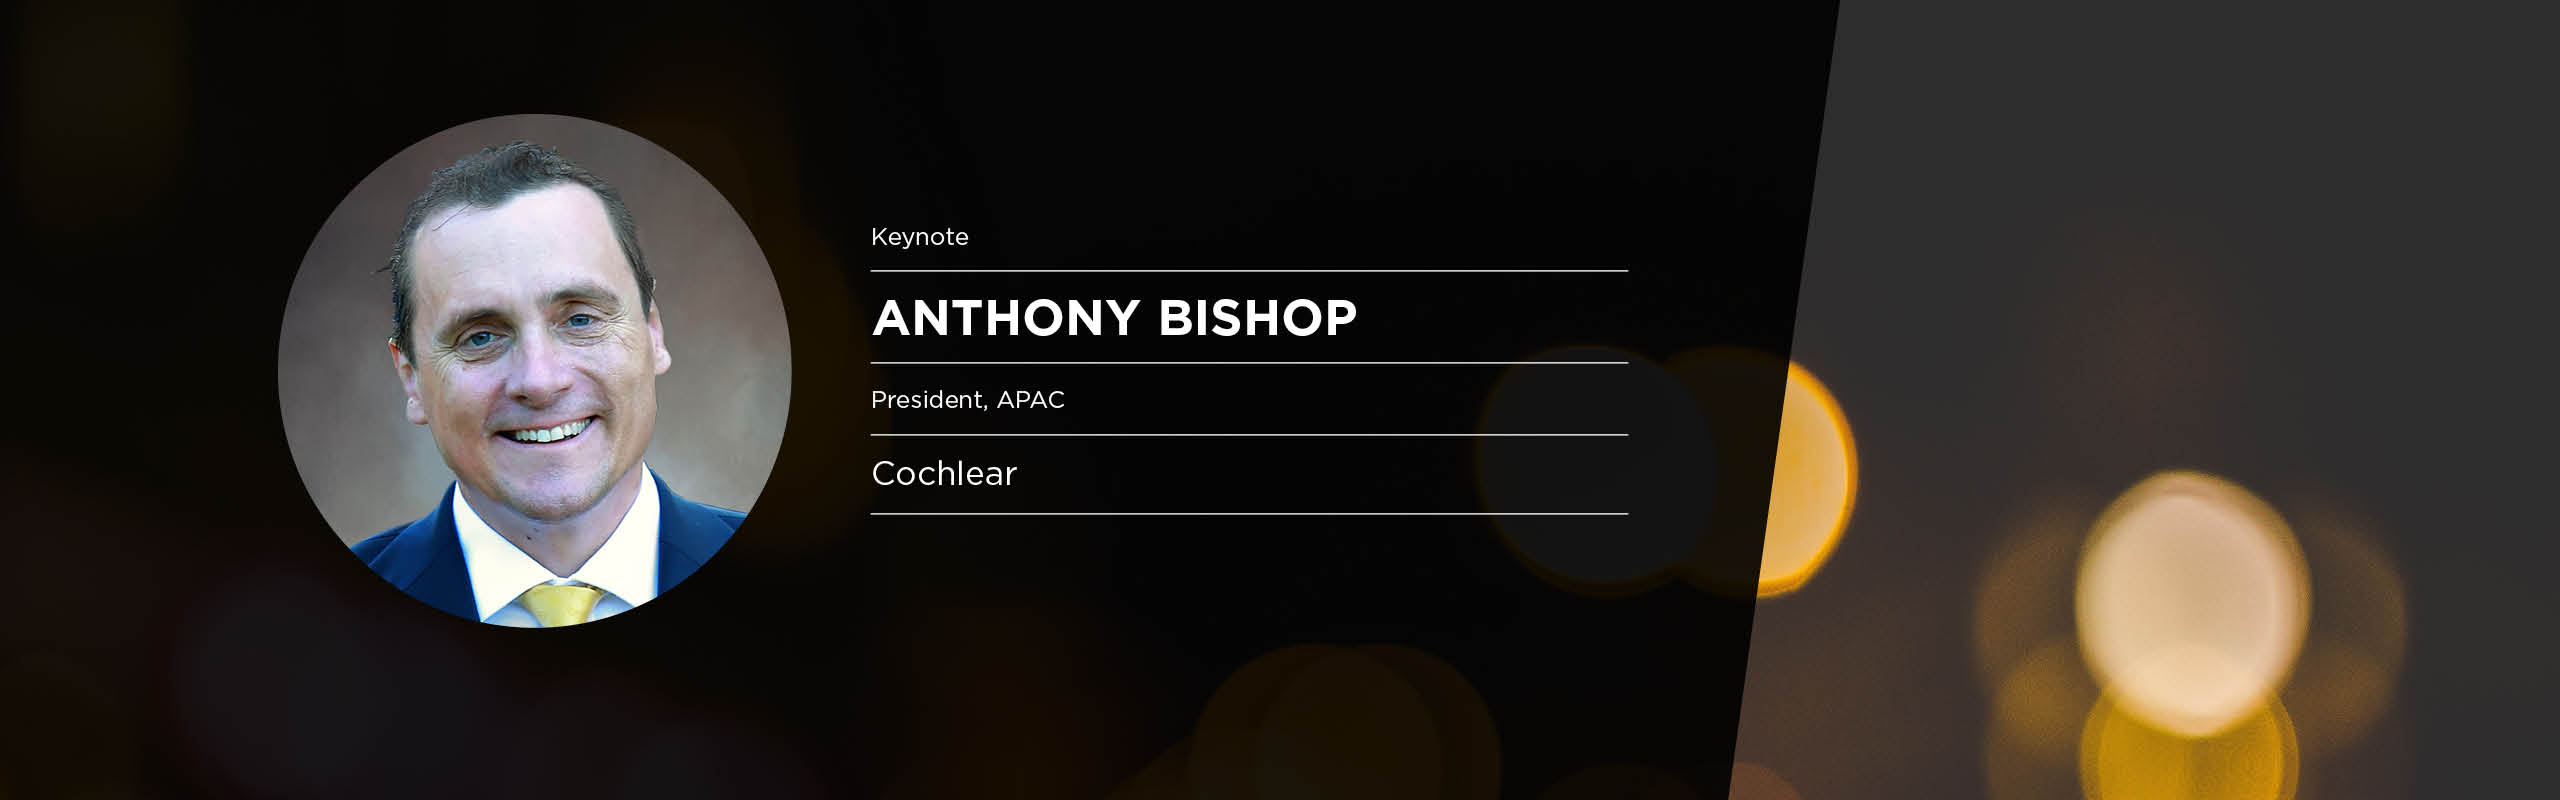 AnthonyBishop_banner